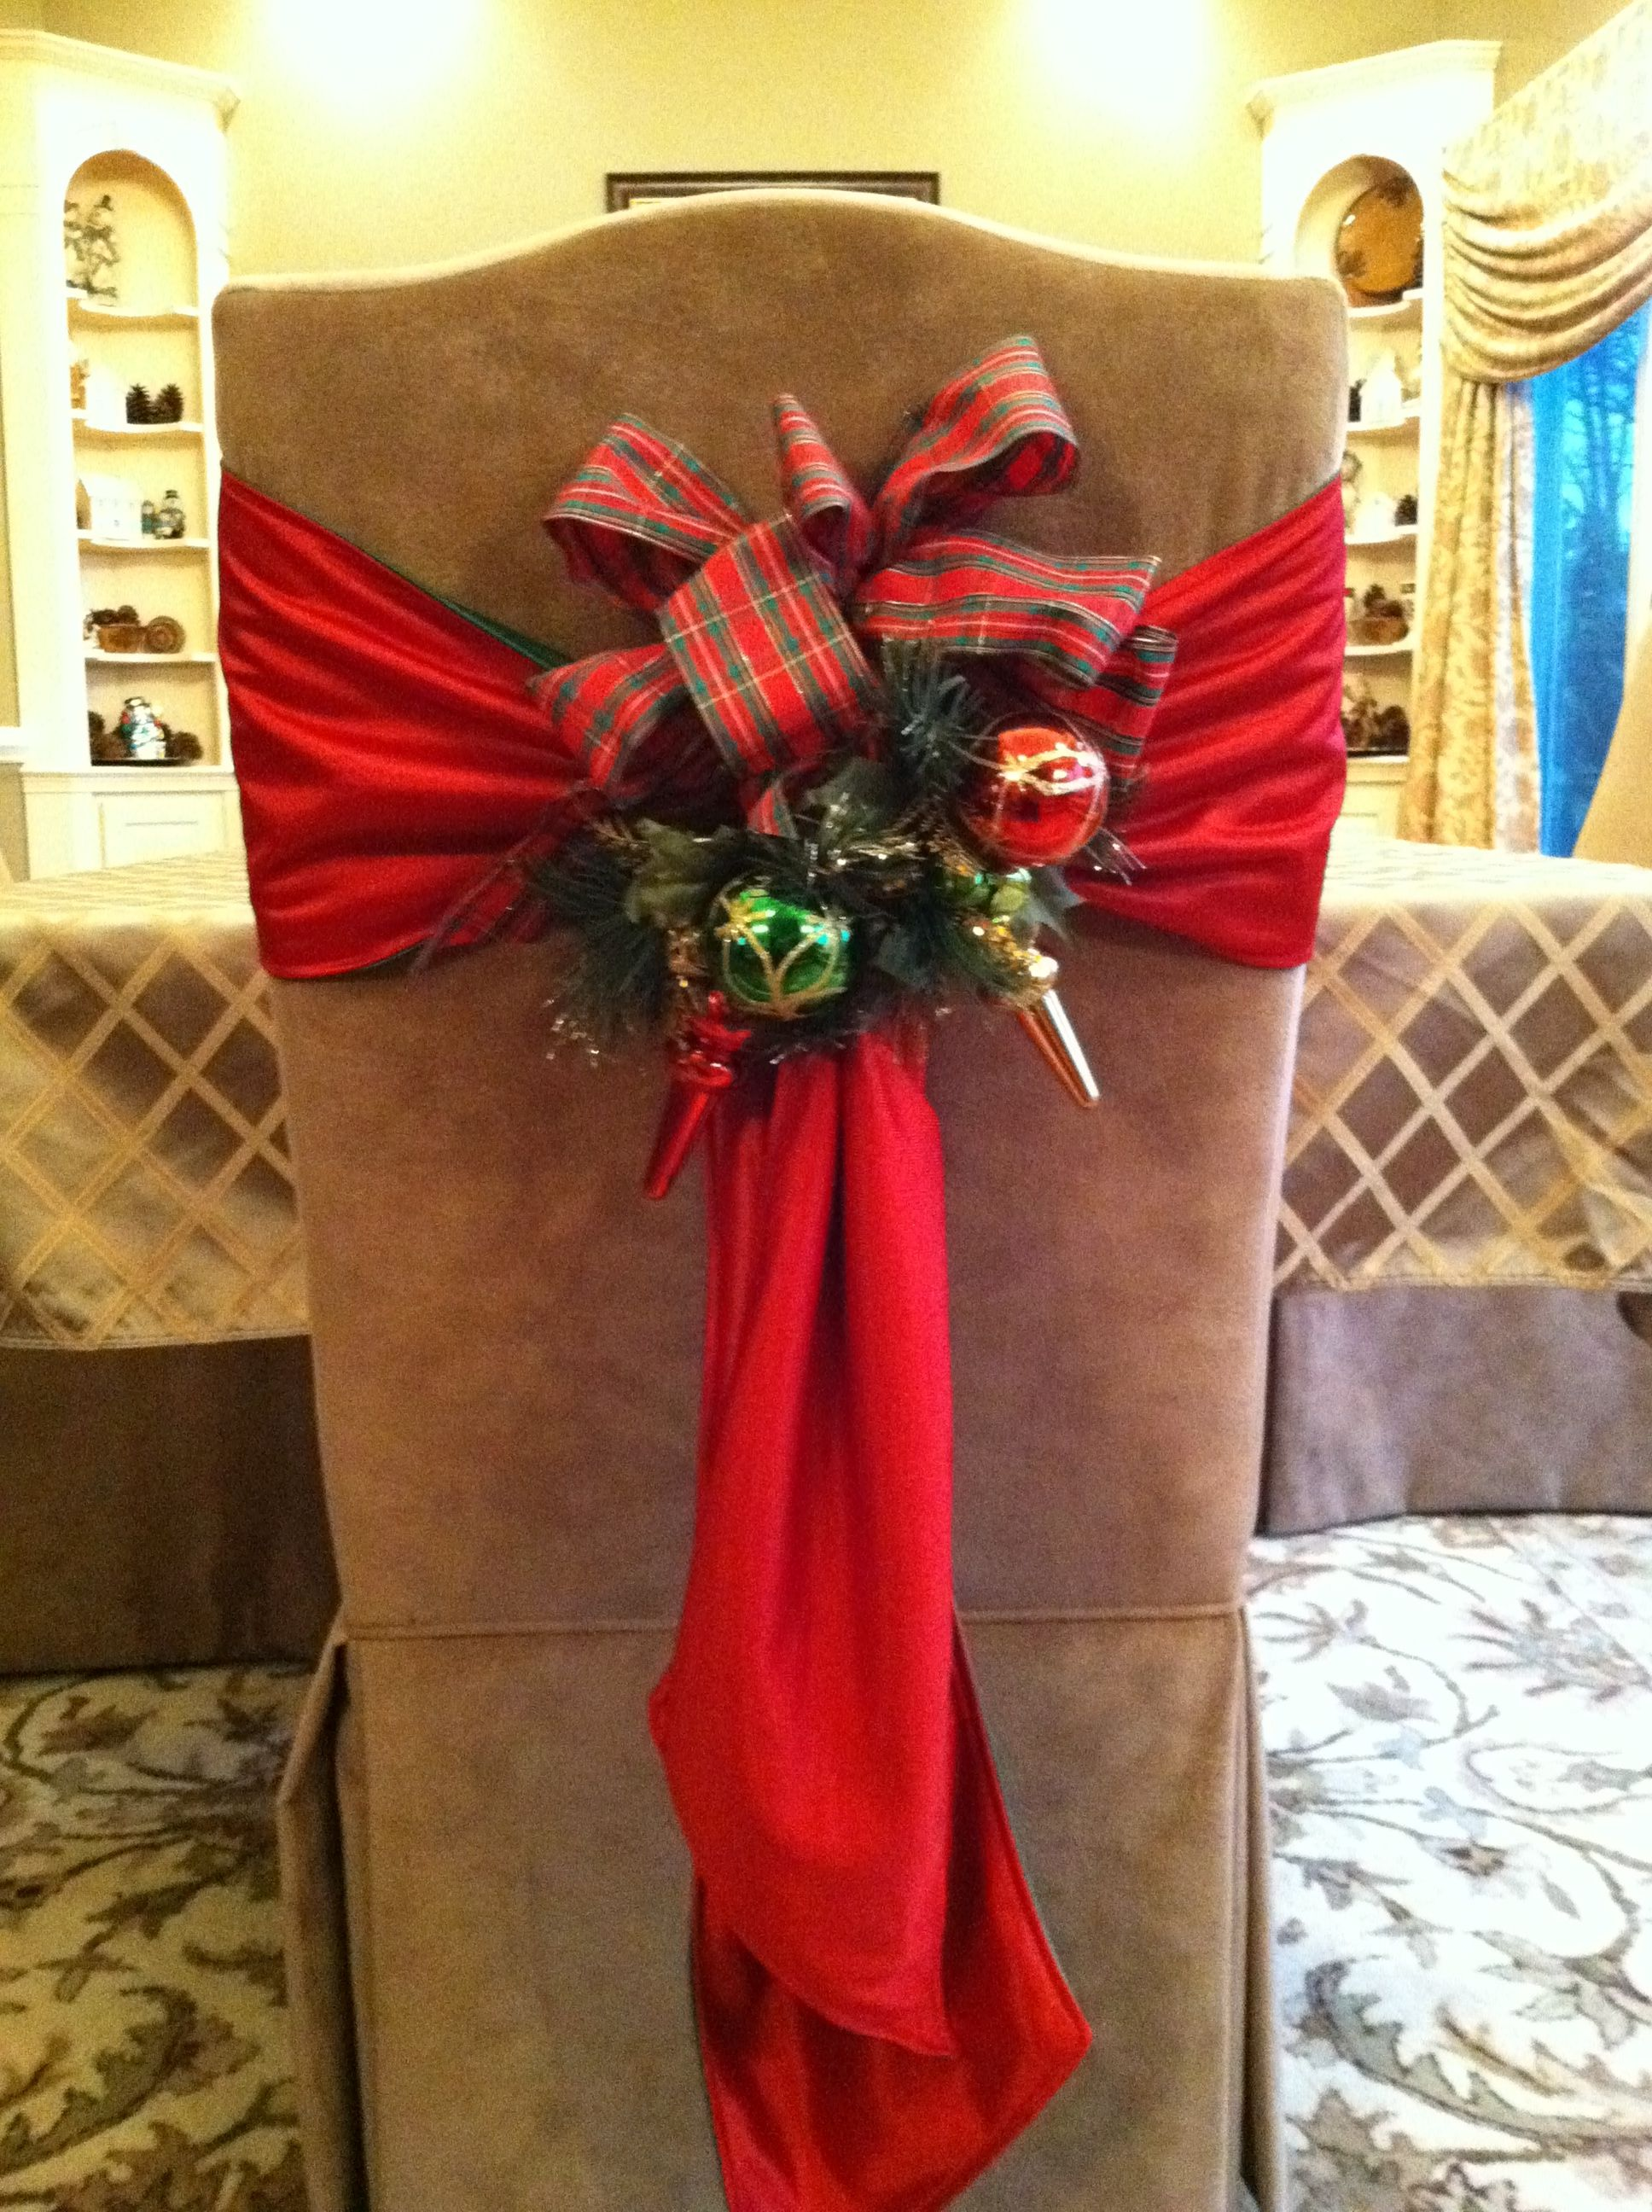 Merry Christmas Chair Covers Cosco Folding Chairs Padded Sash Holiday Decoration Http Ebay